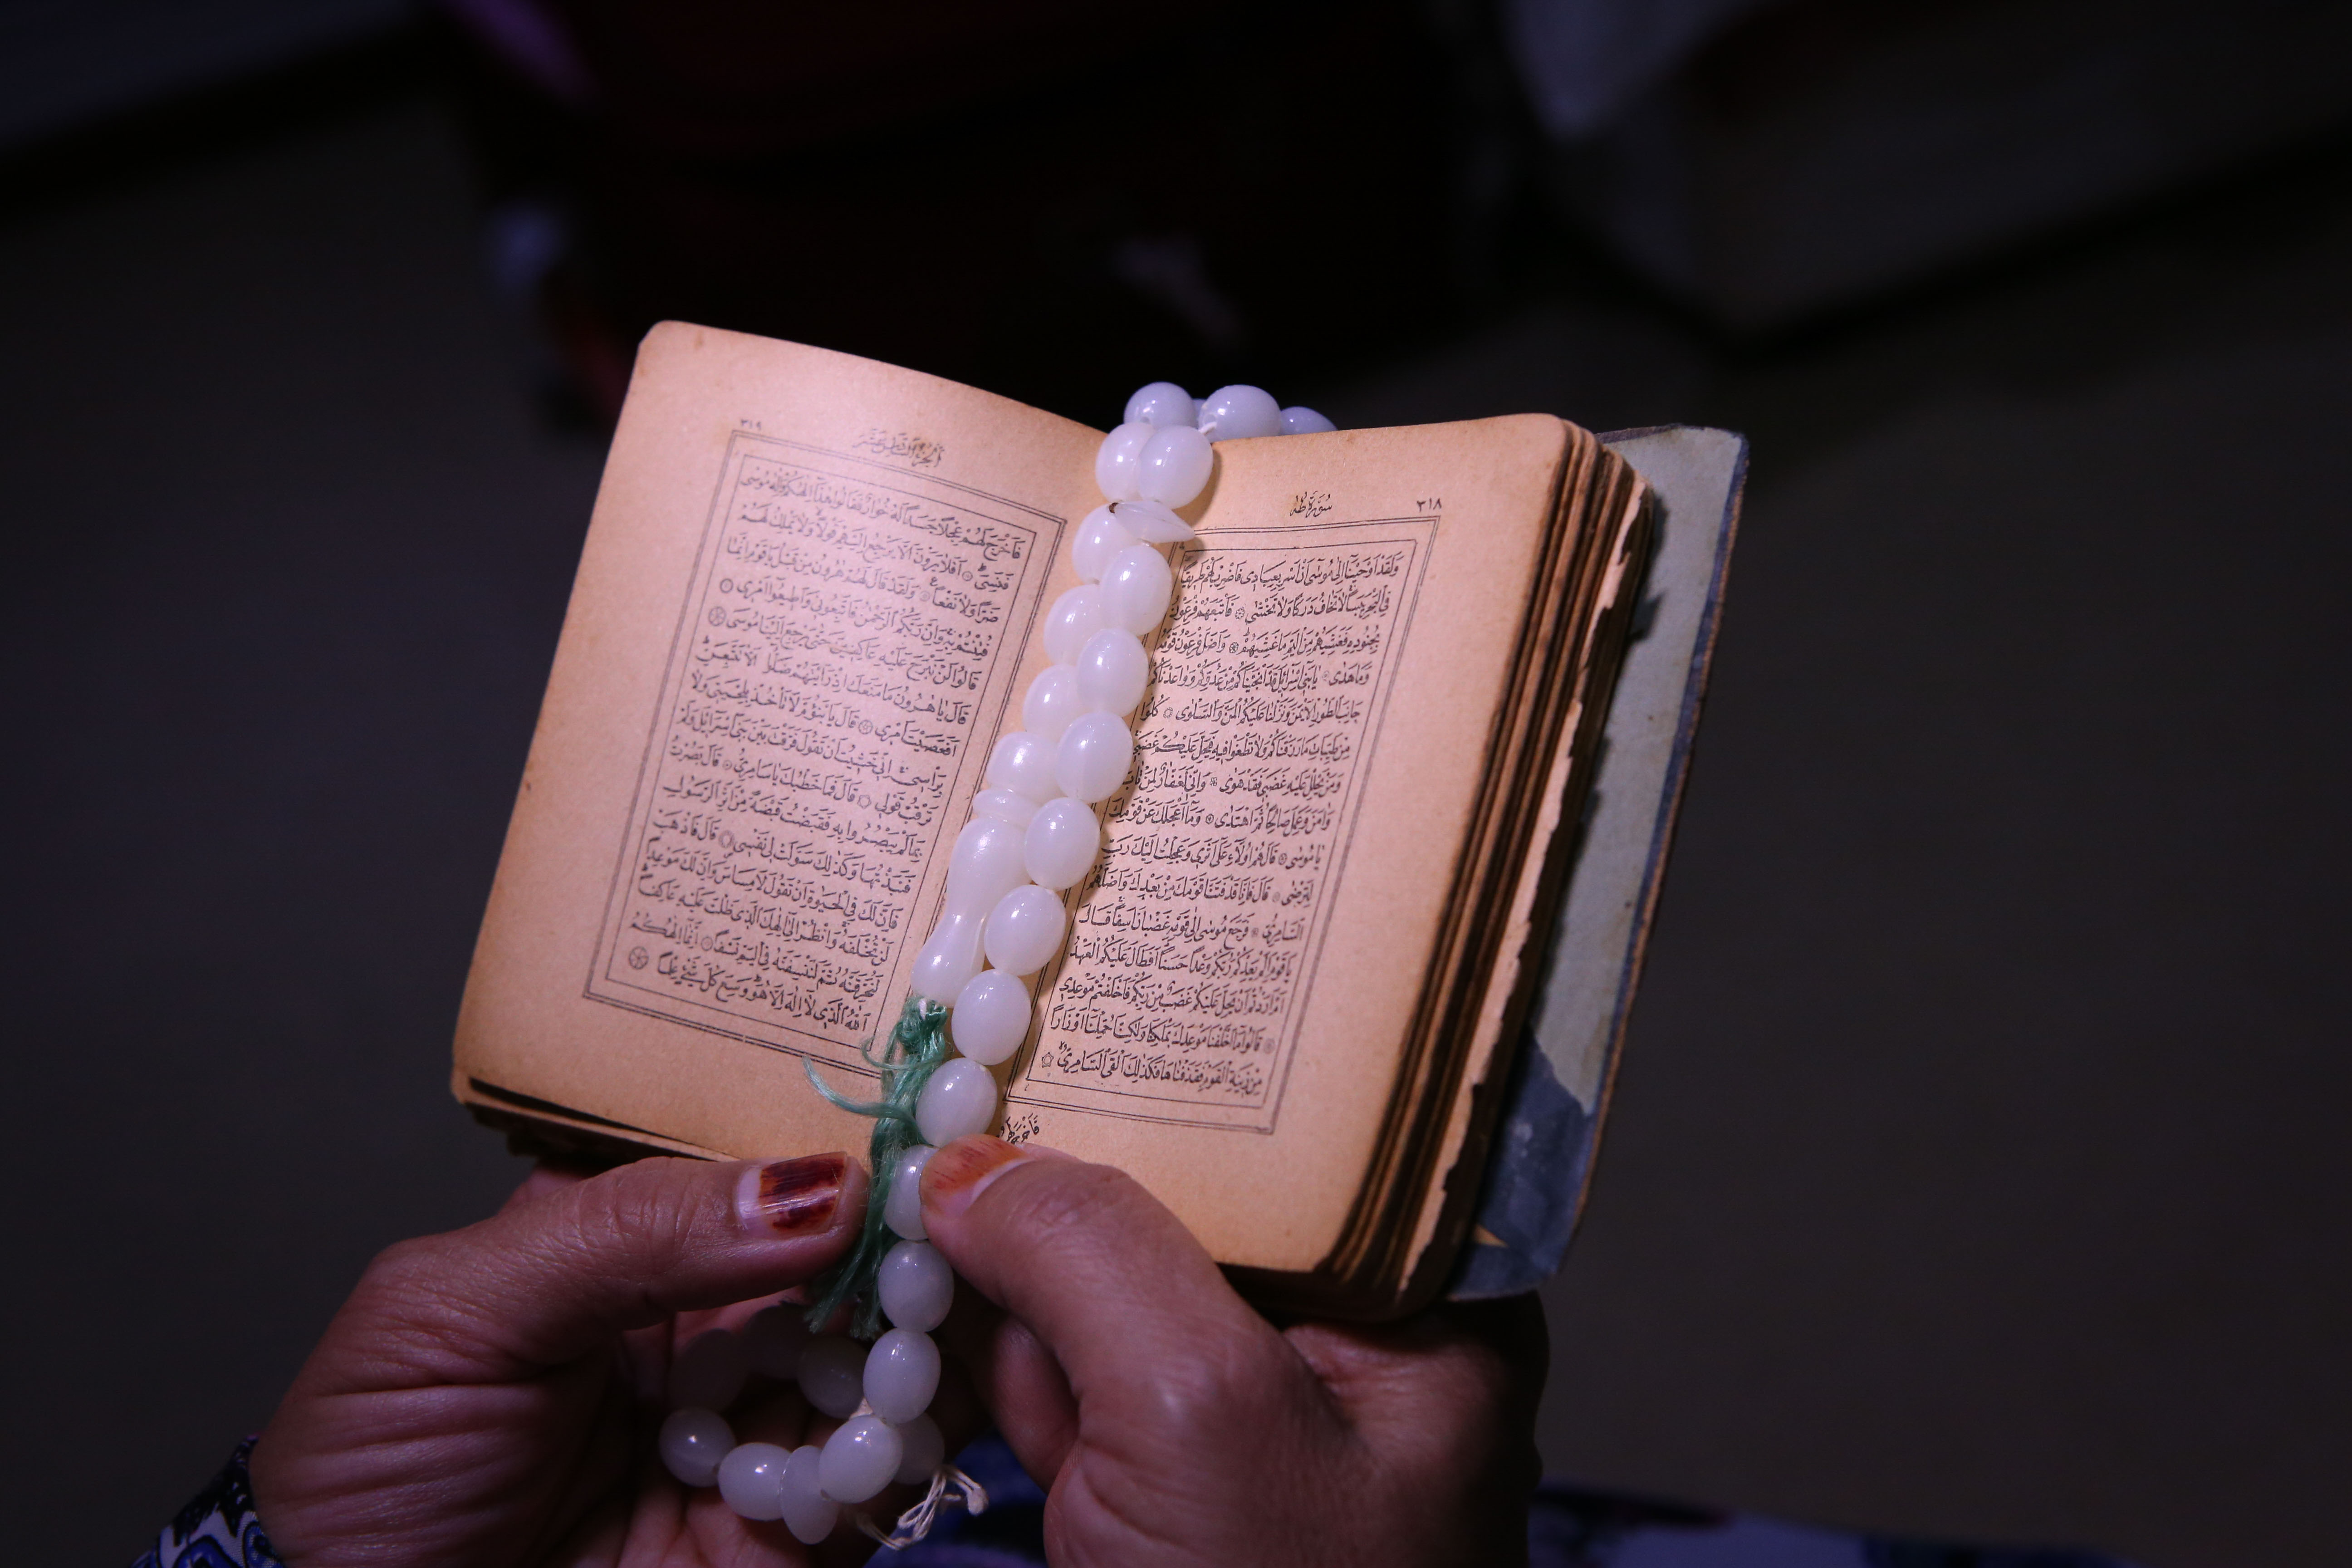 21 September 2019: The Quran and prayer beads that belonged to Imam Haron and which he had with him on the morning of 28 May 1969 when he was detained by the Security Branch at Caledon Square Police Station.